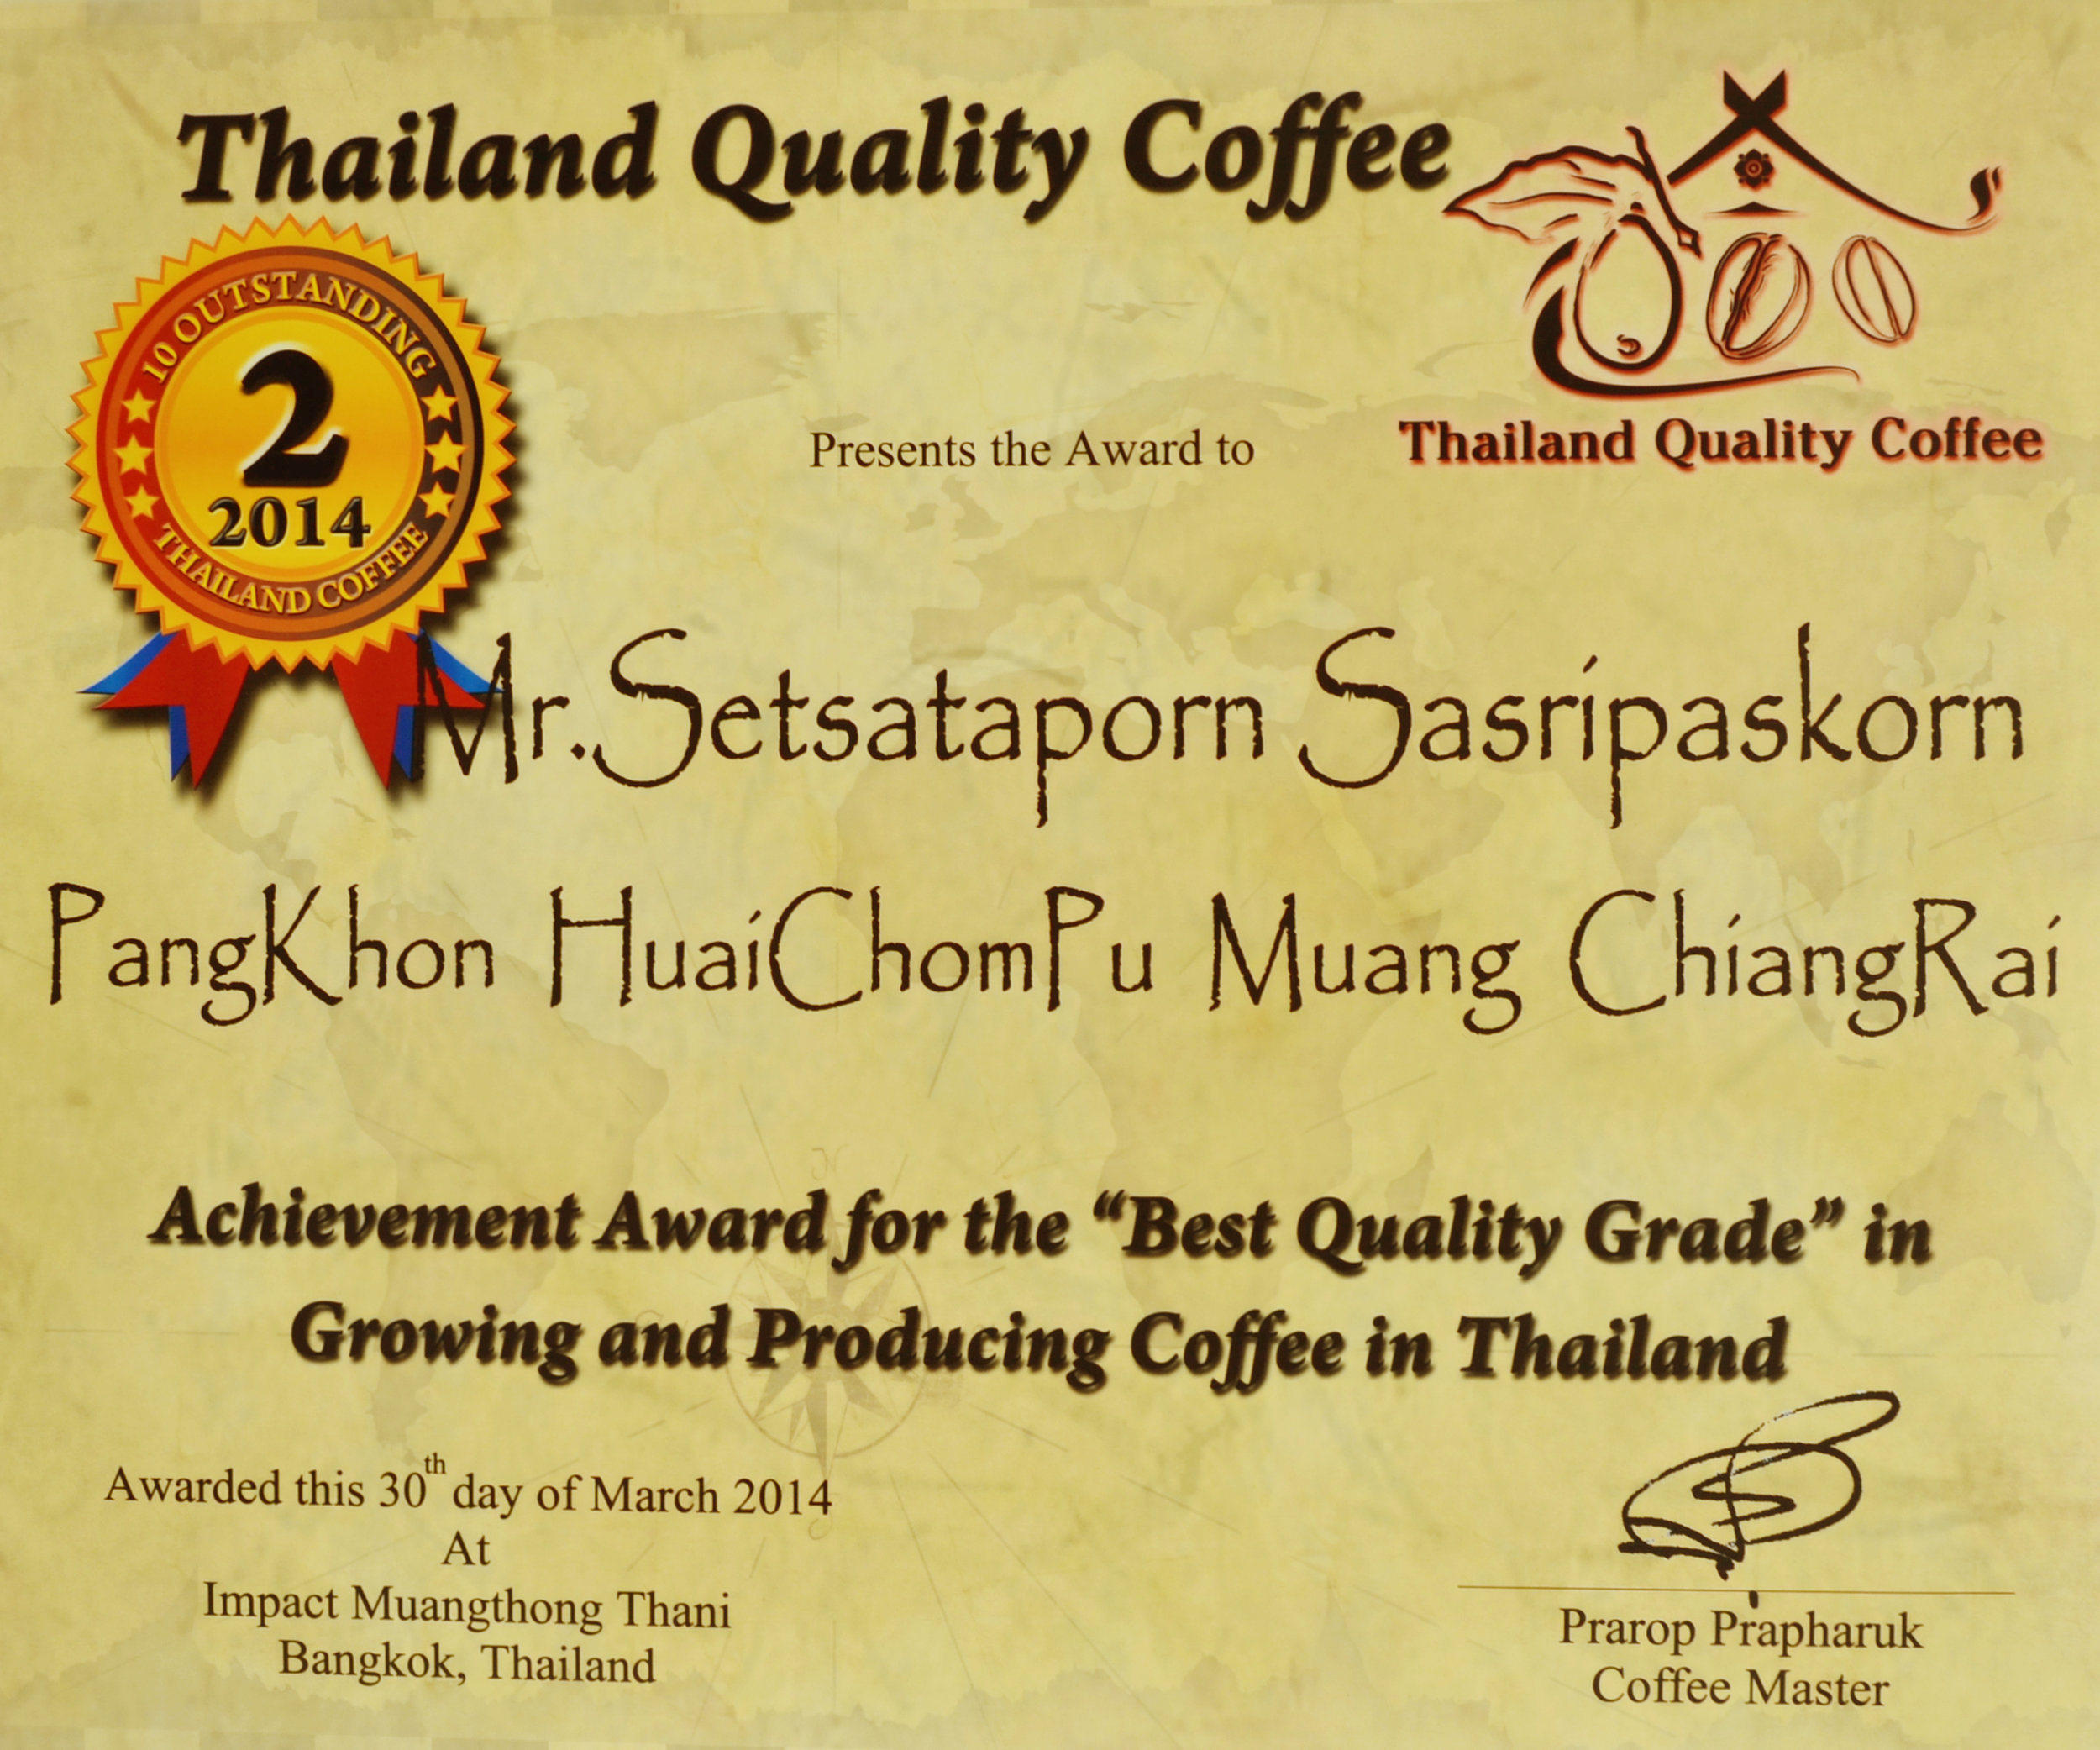 certificate - Thailand Quality Coffee